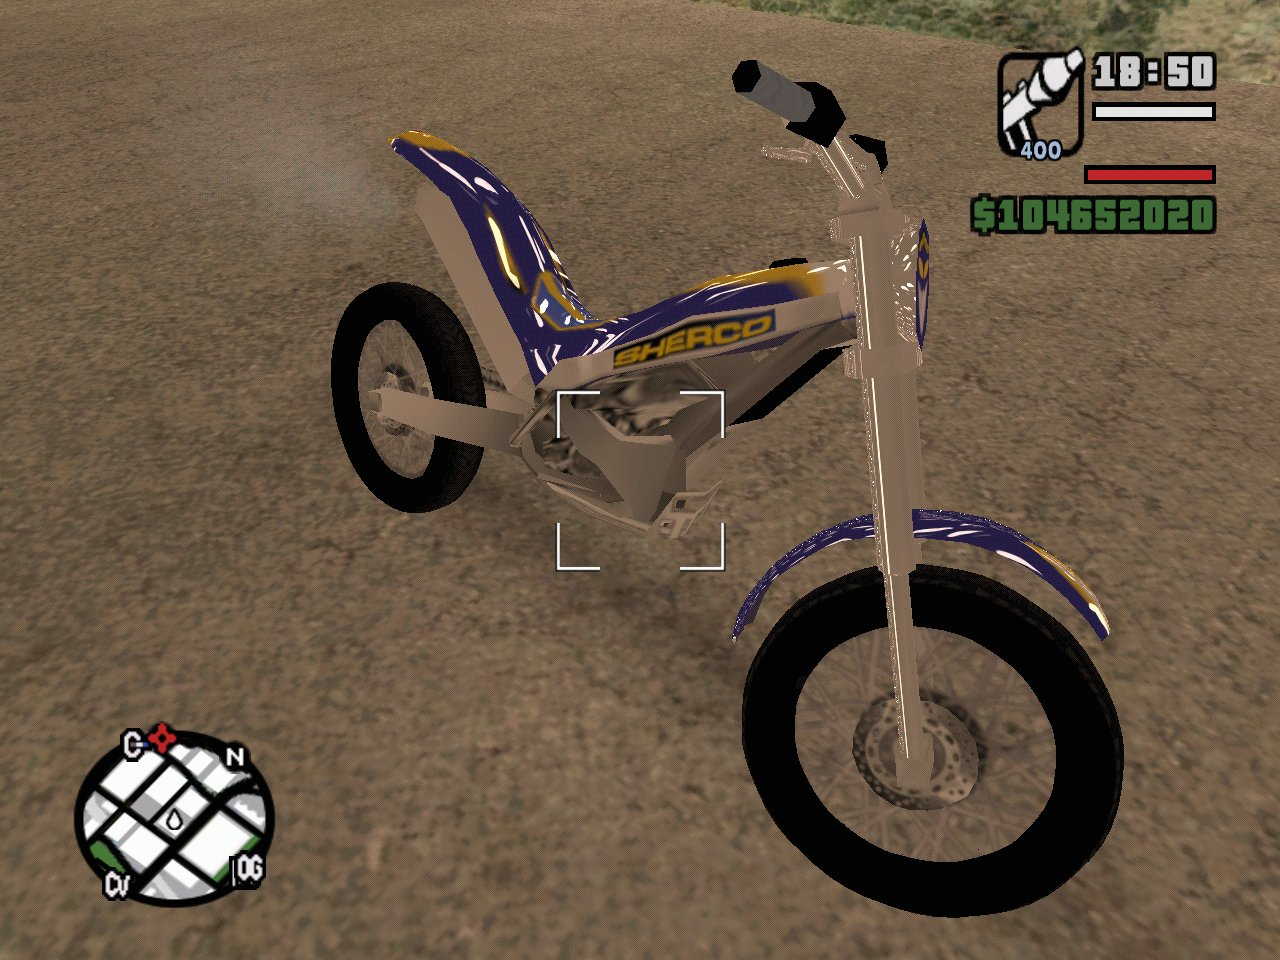 Gta san andreas bike gta san andreas gta san andreas